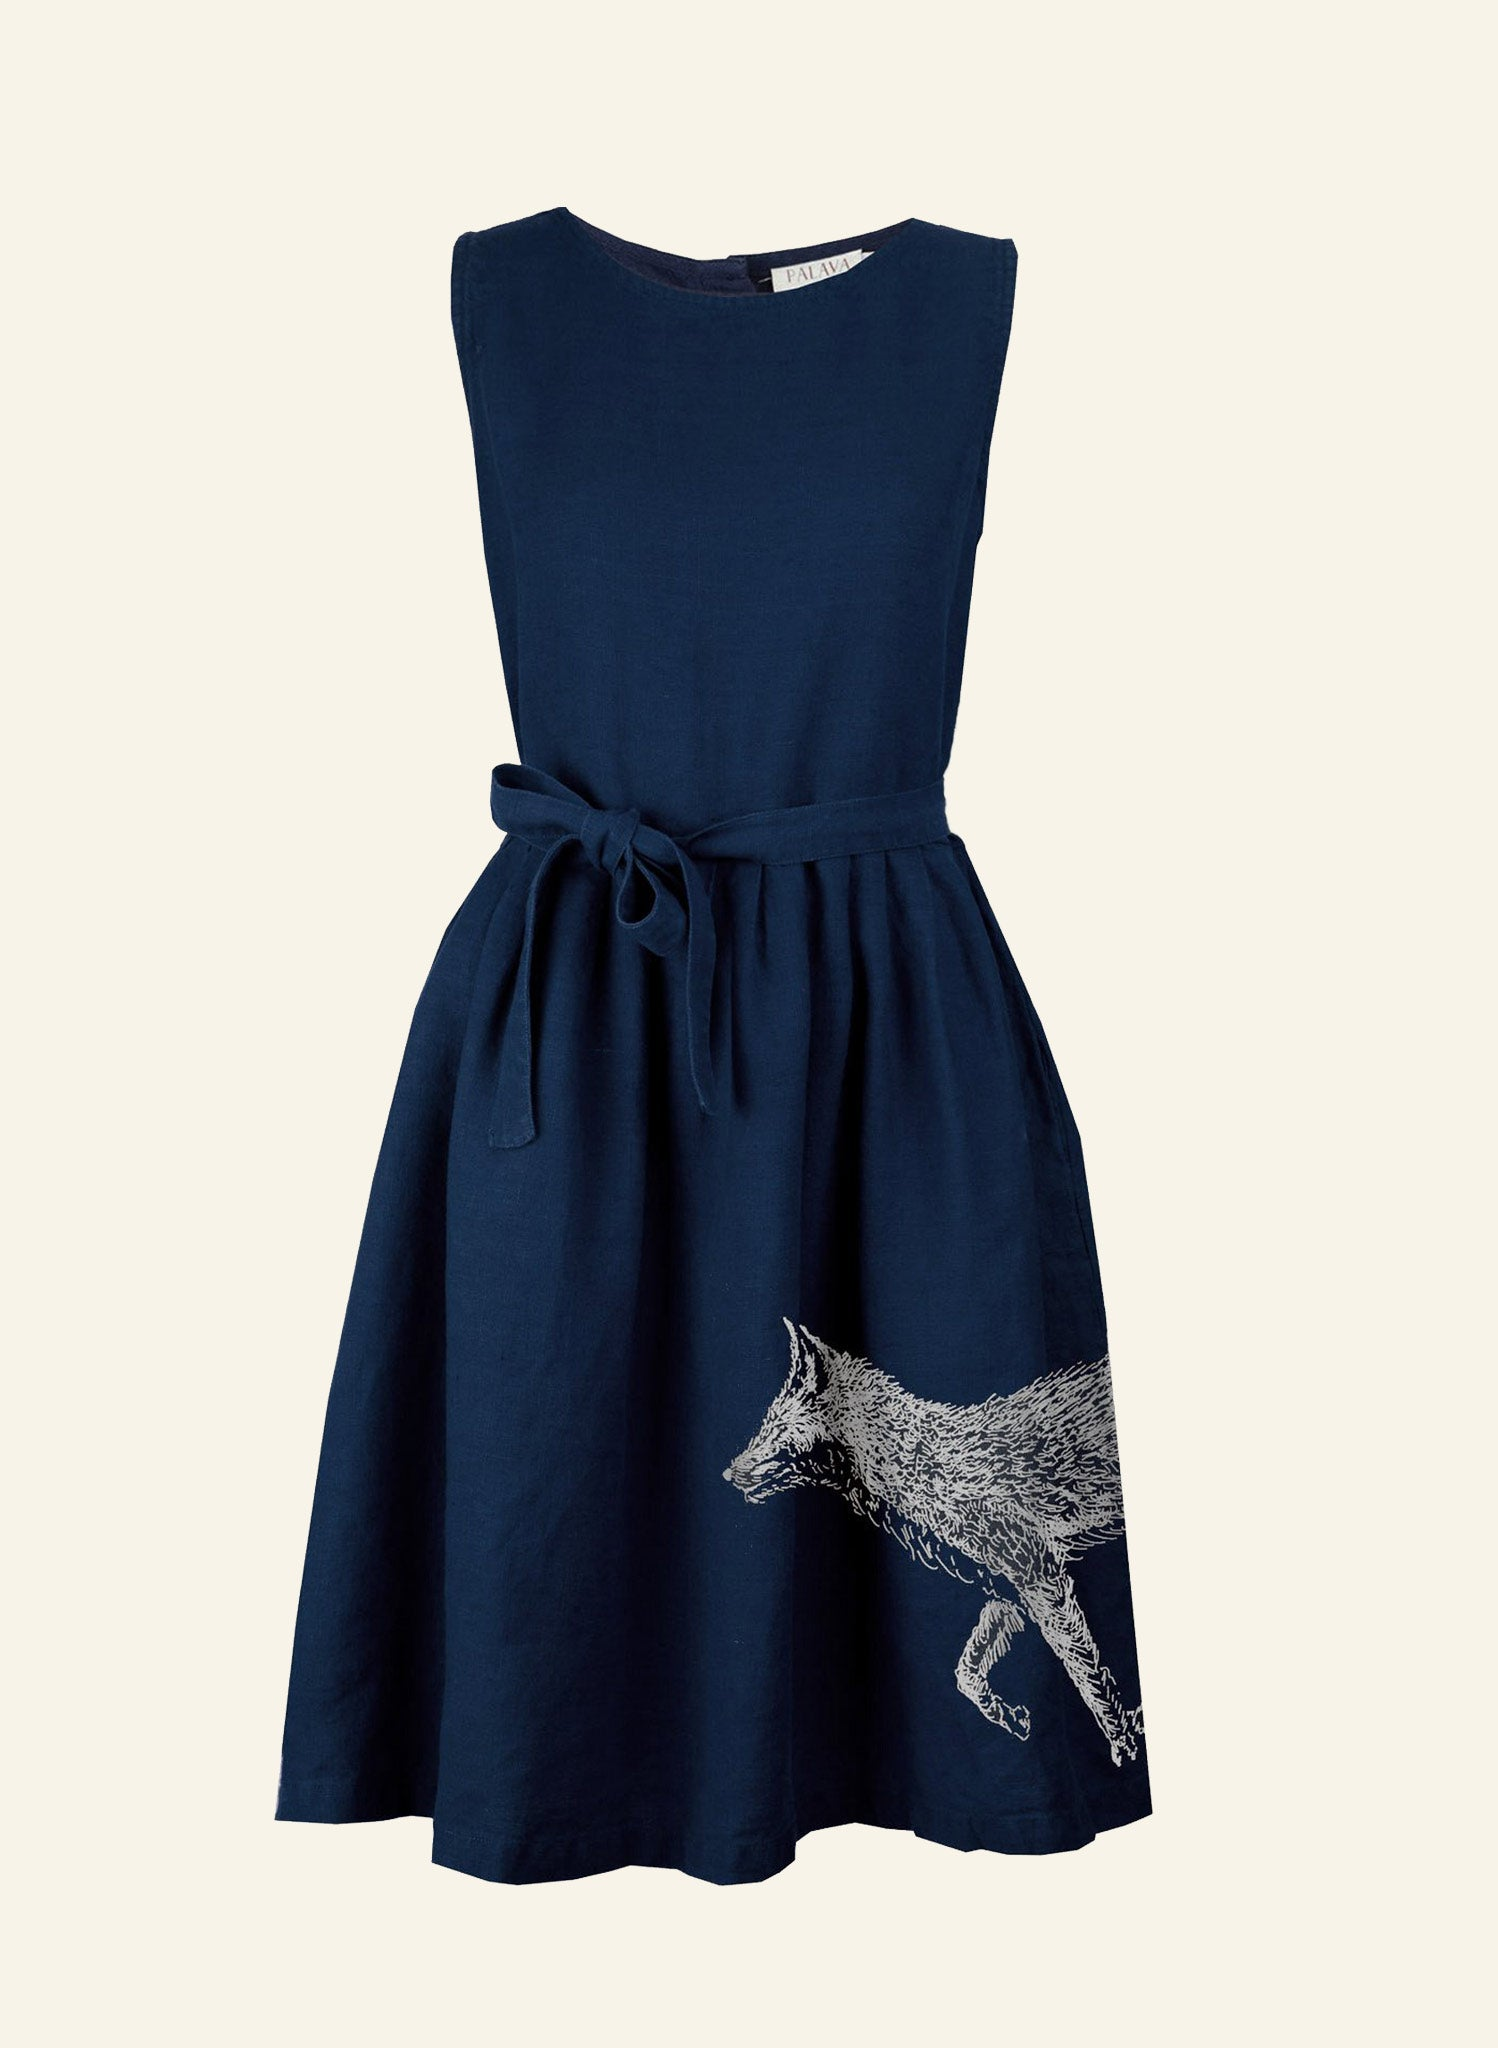 Mabel - Navy Fox Dress - 100% Linen